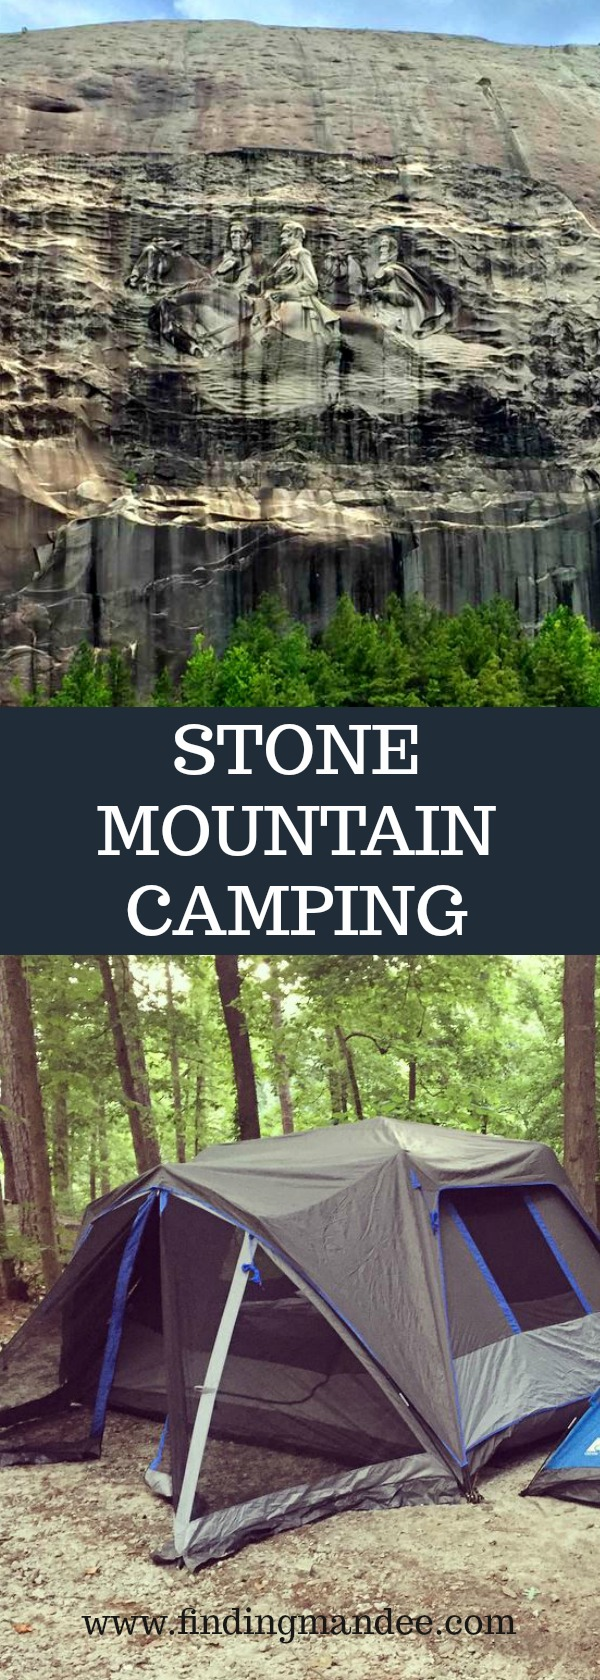 Camping at Stone Mountain, GA